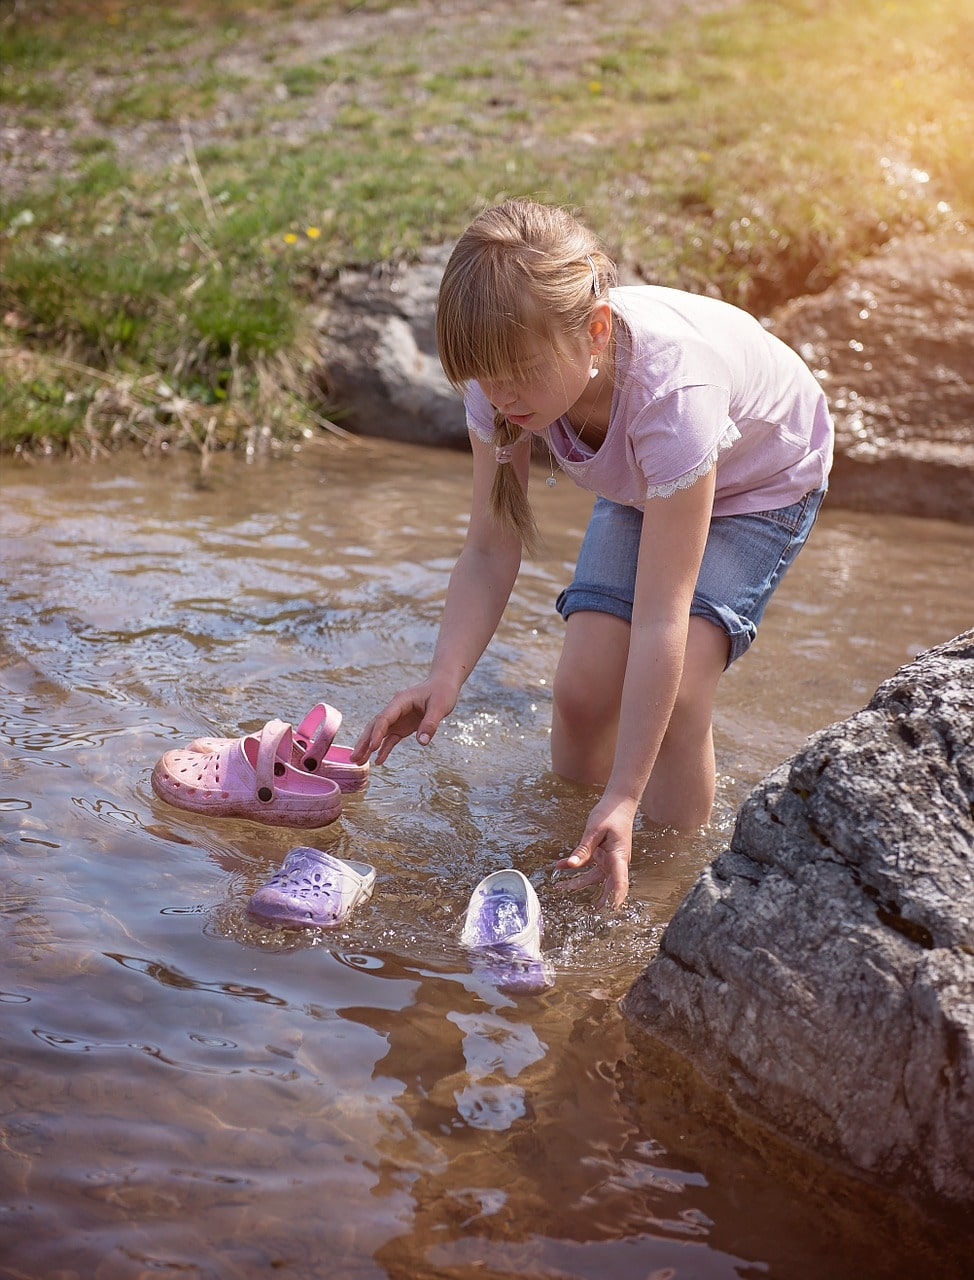 young girl washing shoes in the river